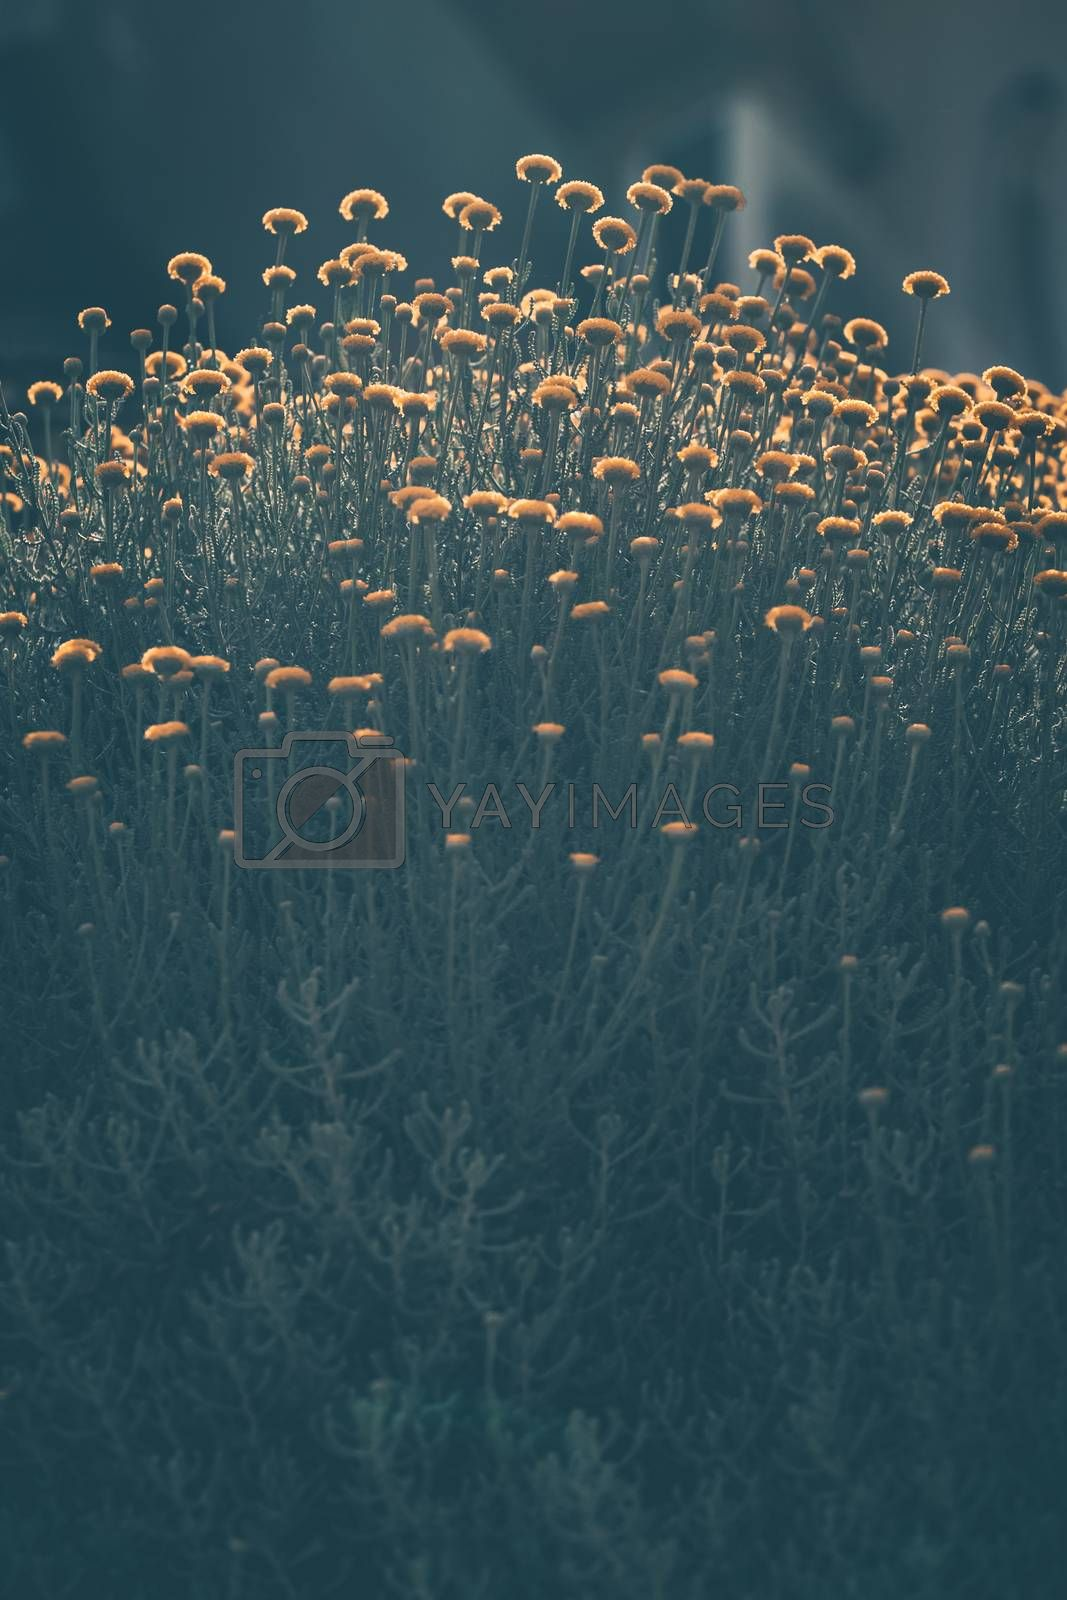 Royalty free image of  Chrysanthemum Flowers Background by Anna_Omelchenko